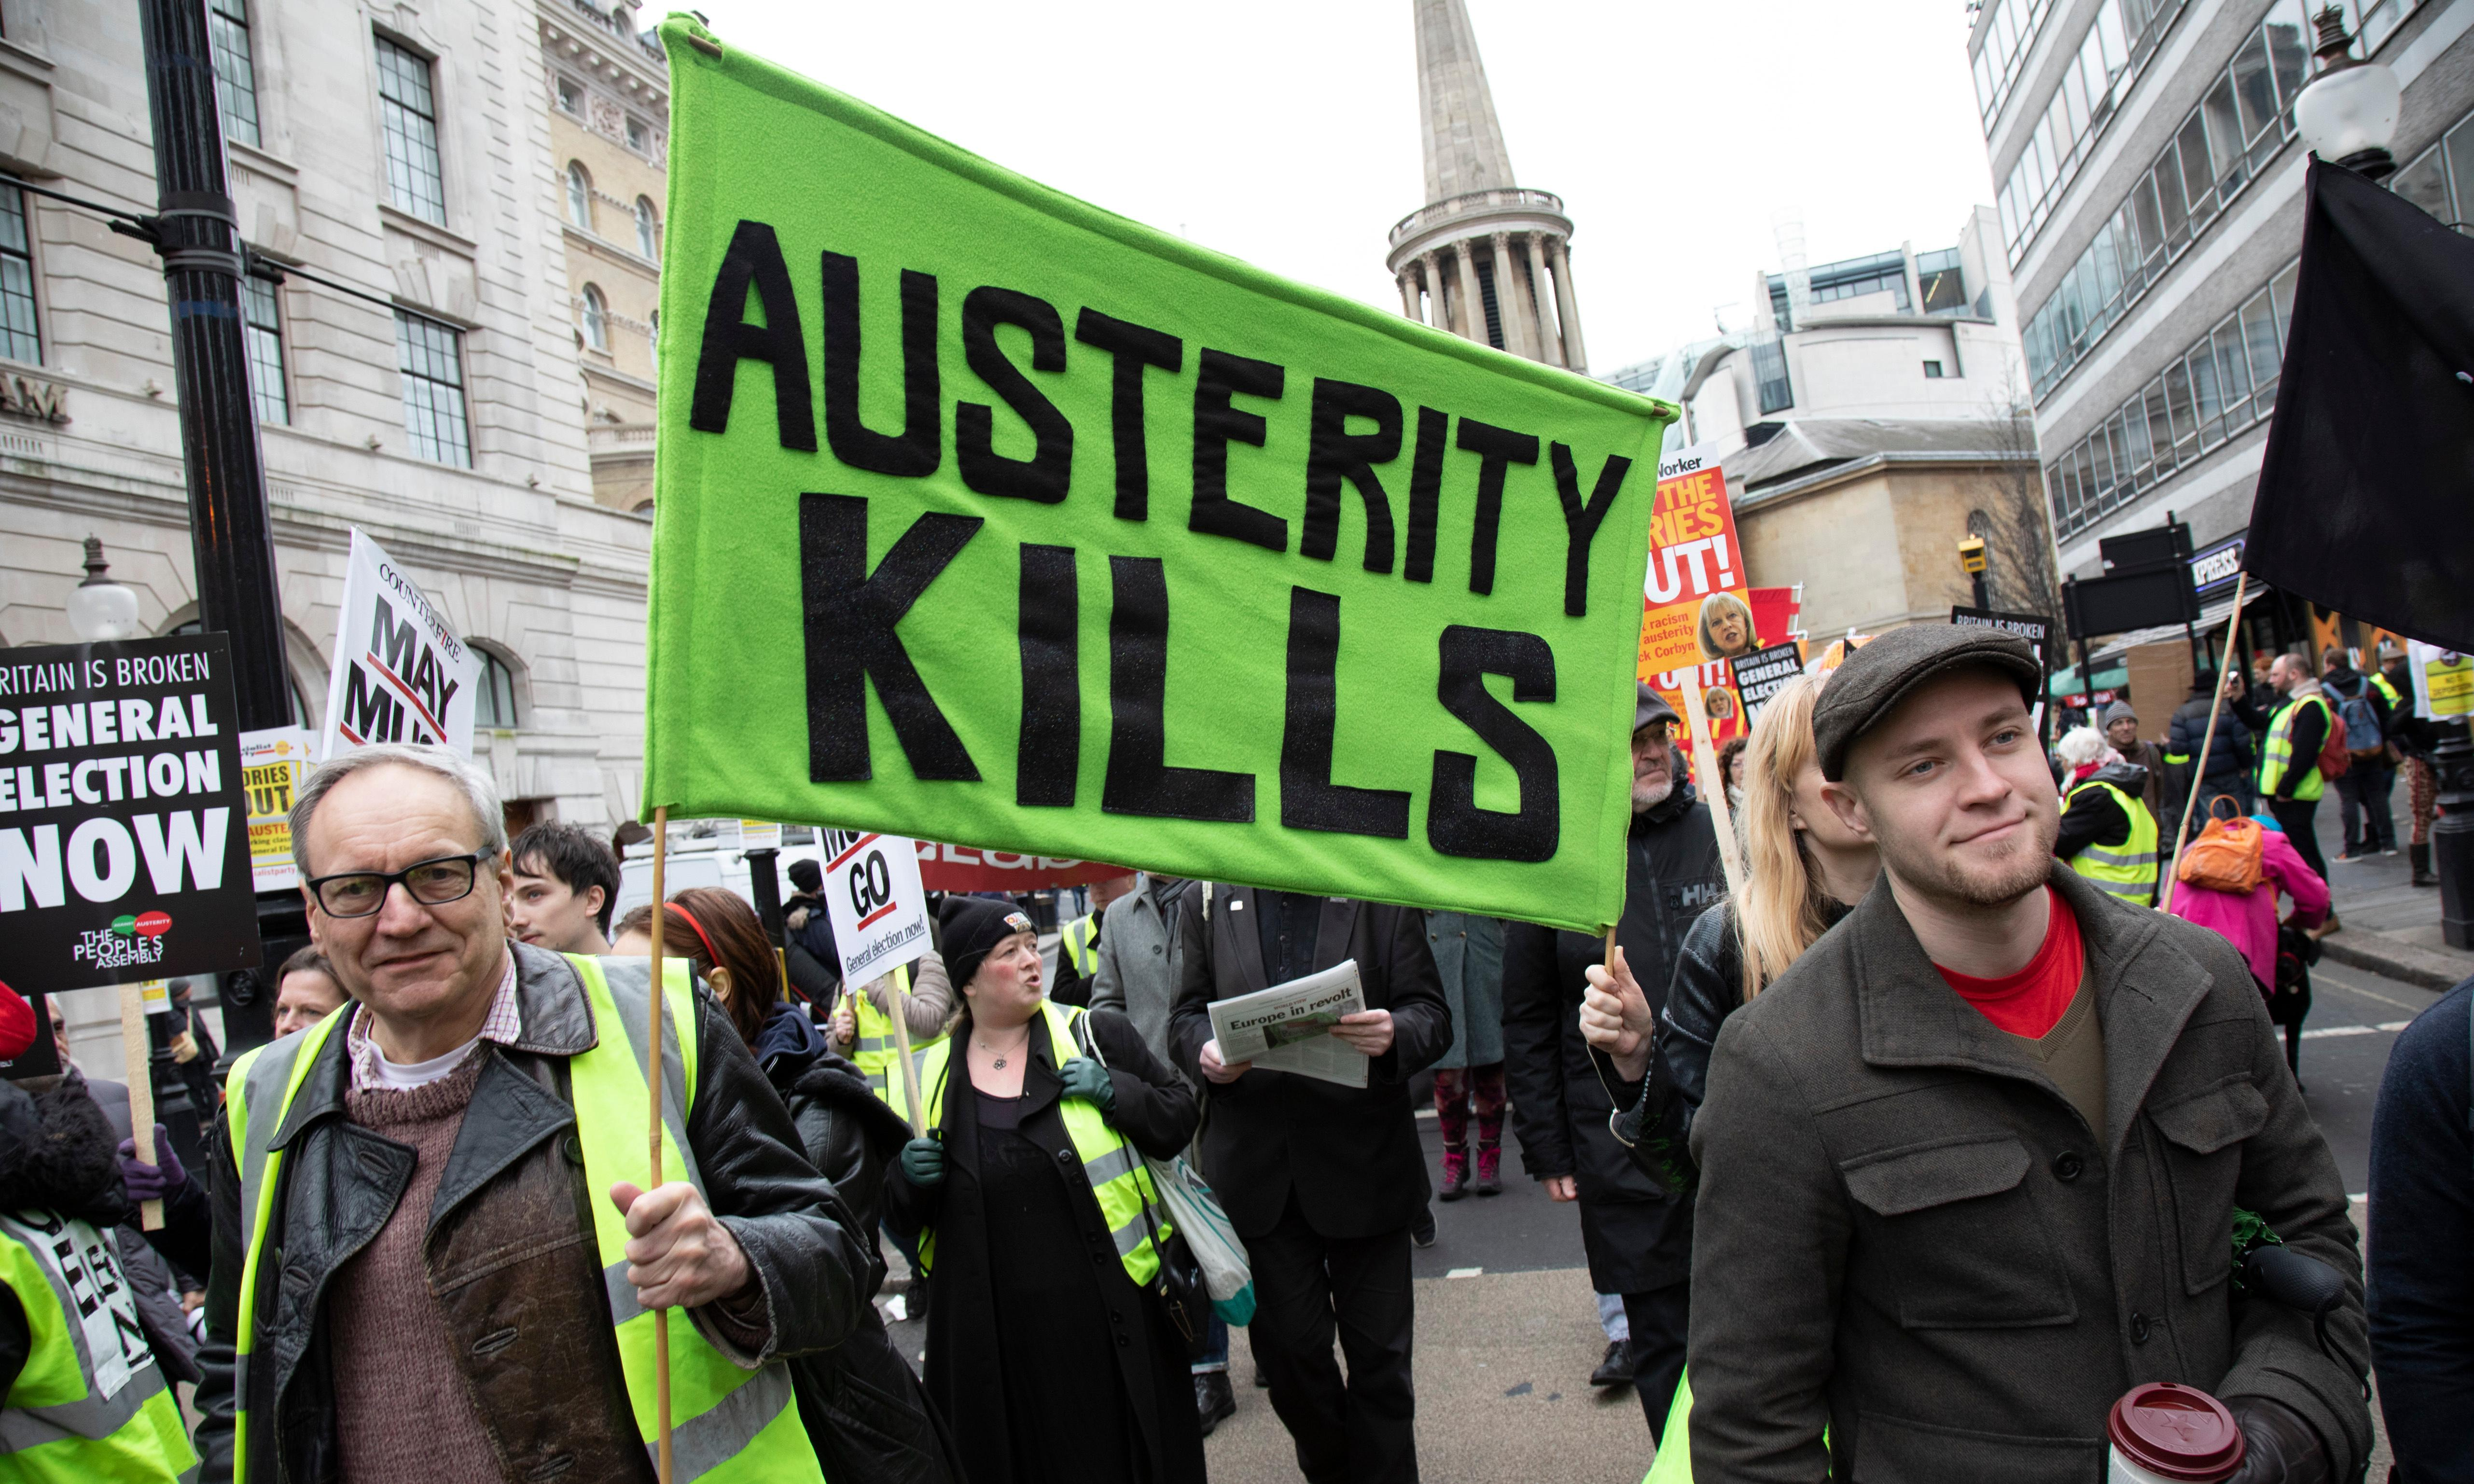 Austerity is a political choice, not an economic necessity